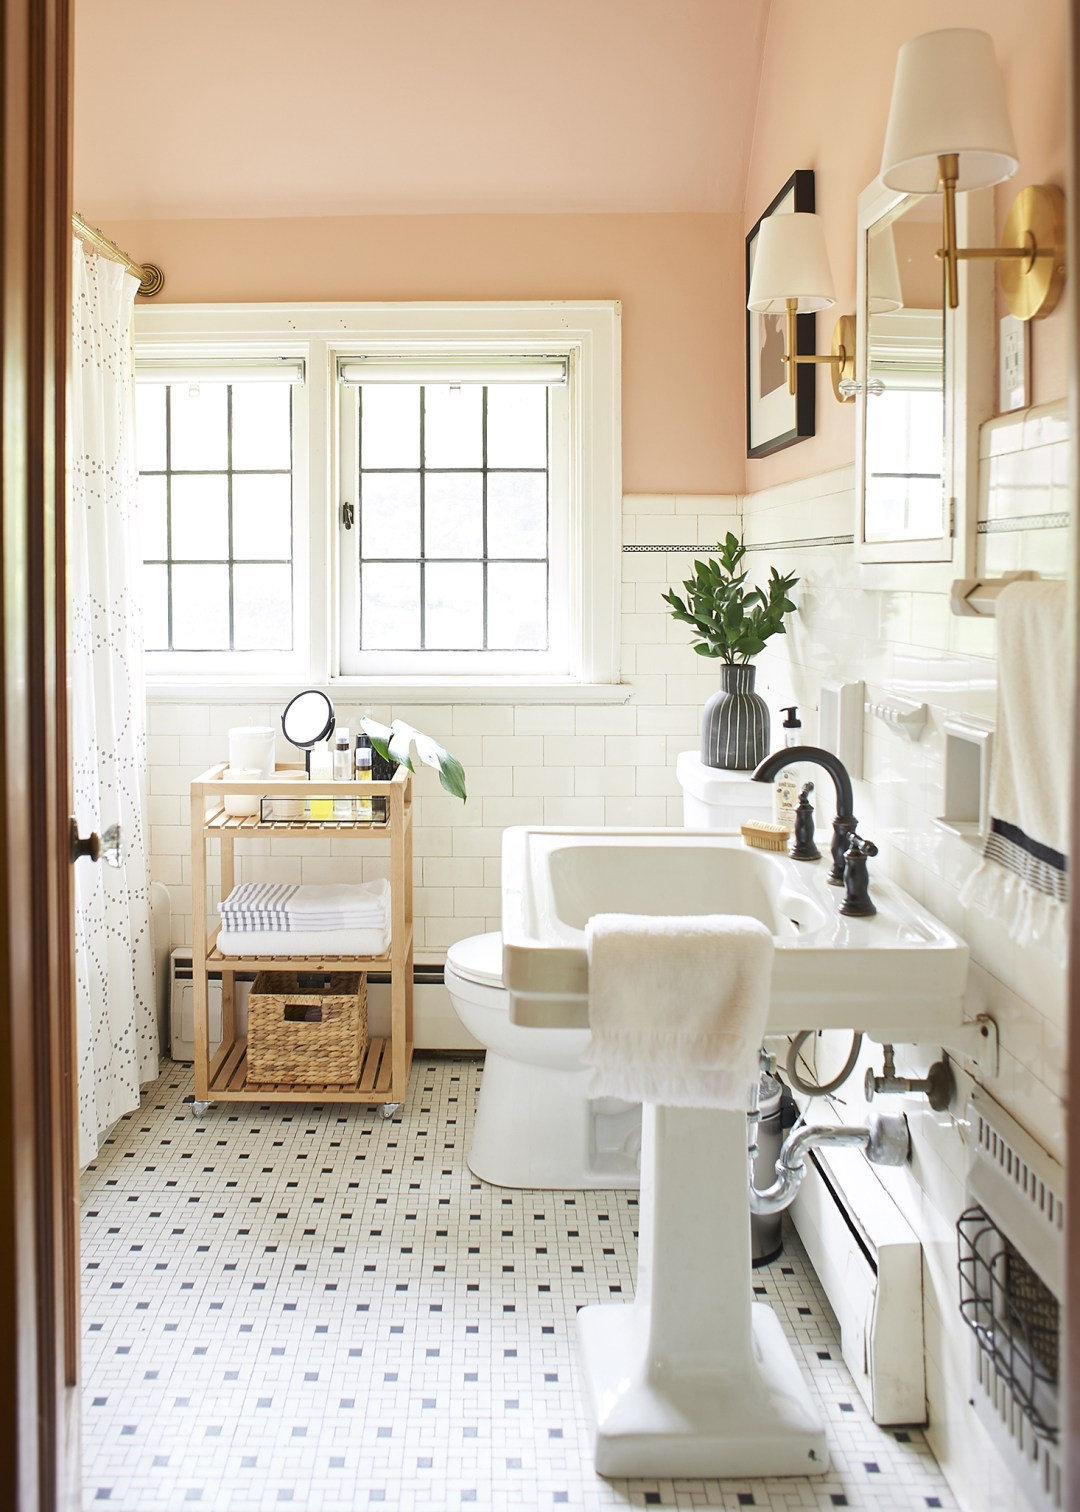 Blush Bathroom Restoration - The Sweet Beast Blog